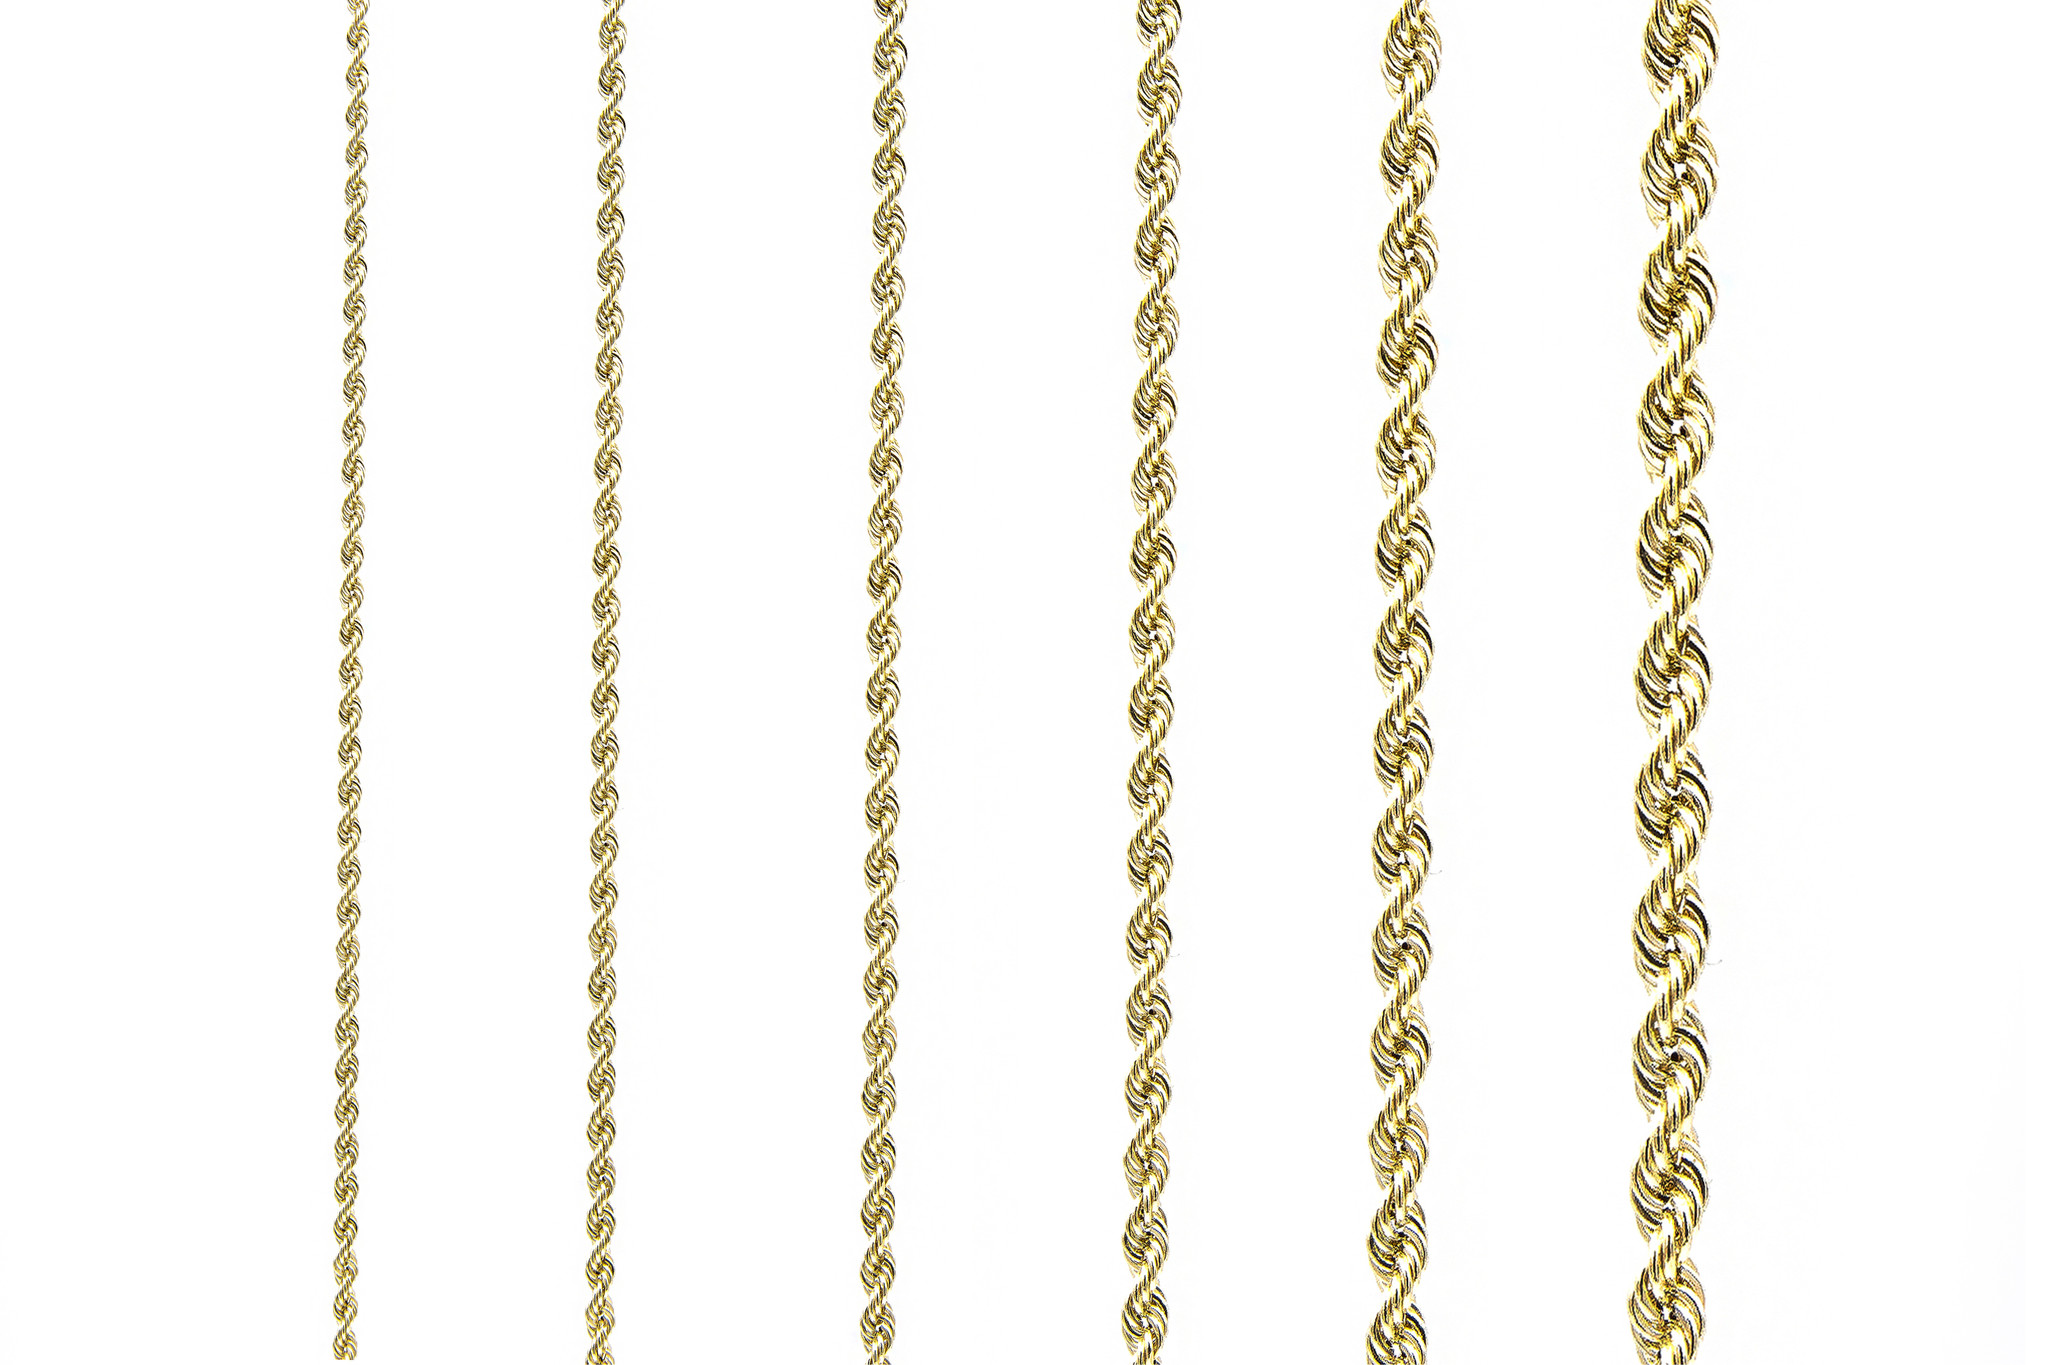 Rope chain witgoud 14kt 3mm-4